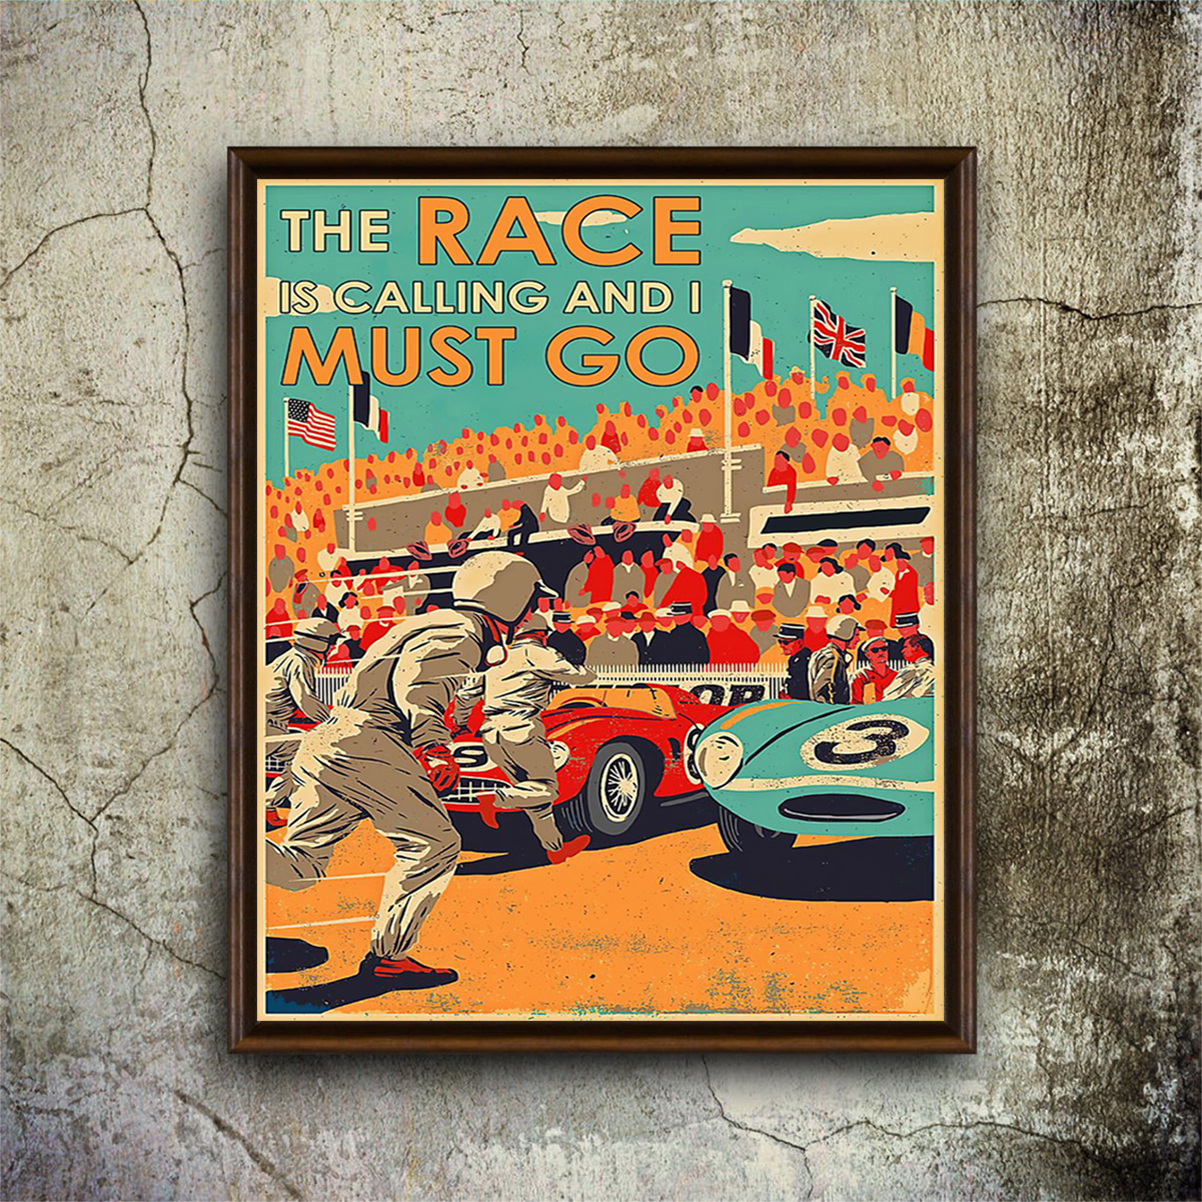 The race is calling and I must go poster A1